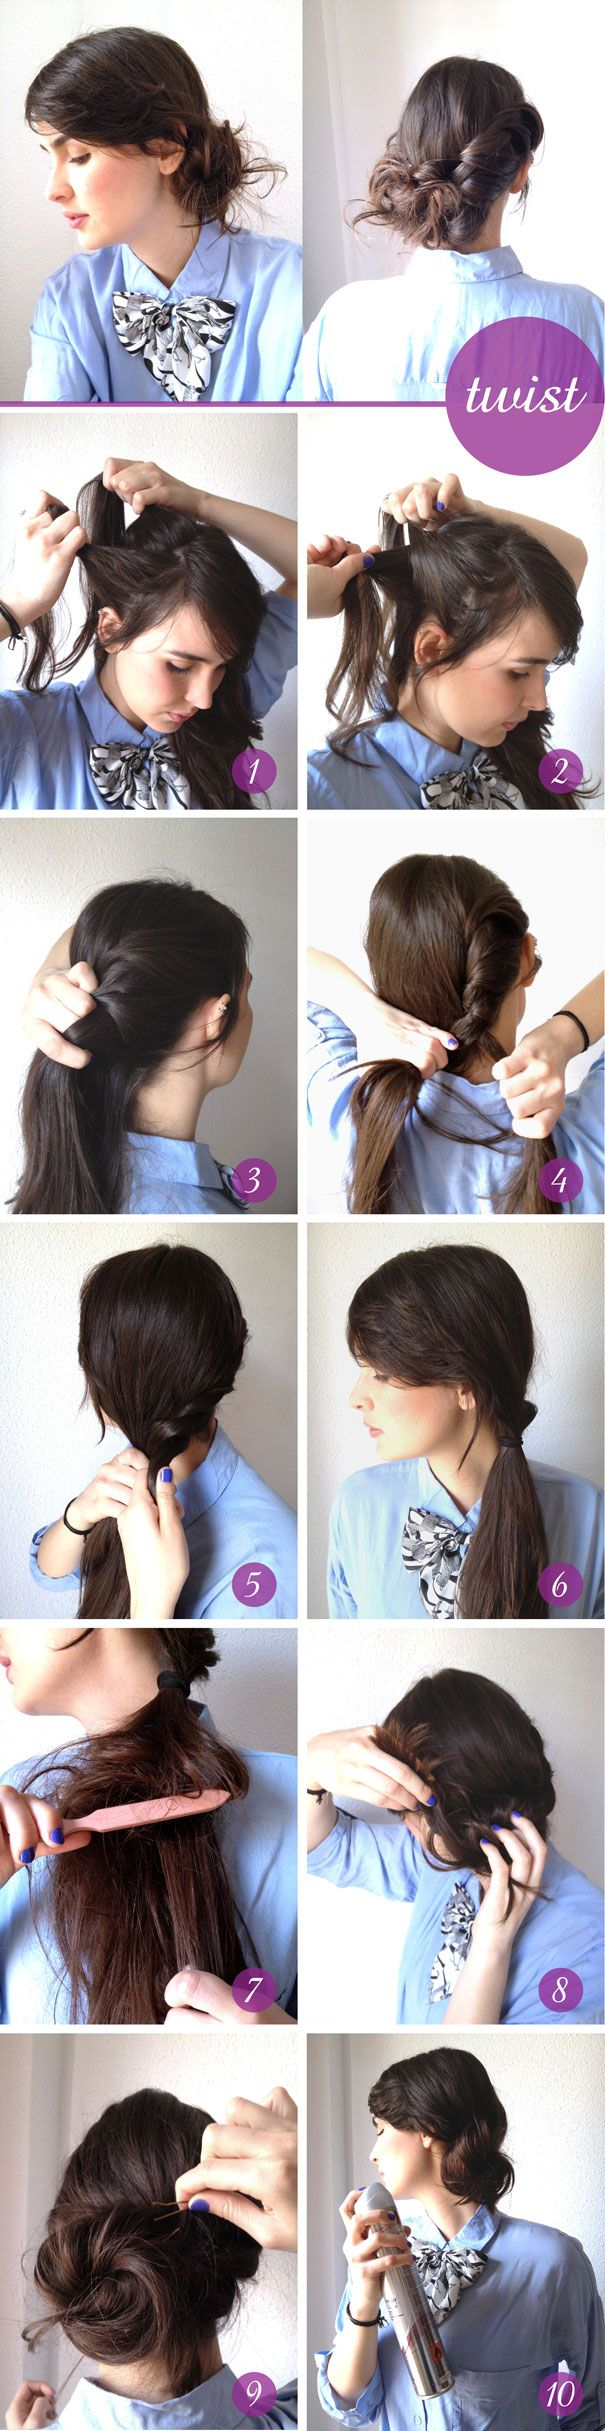 Side Twist Need To Try This Http Profotolib Com Picture Php 69707 Category 2344 Hair Styles Diy Hairstyles Hair Beauty